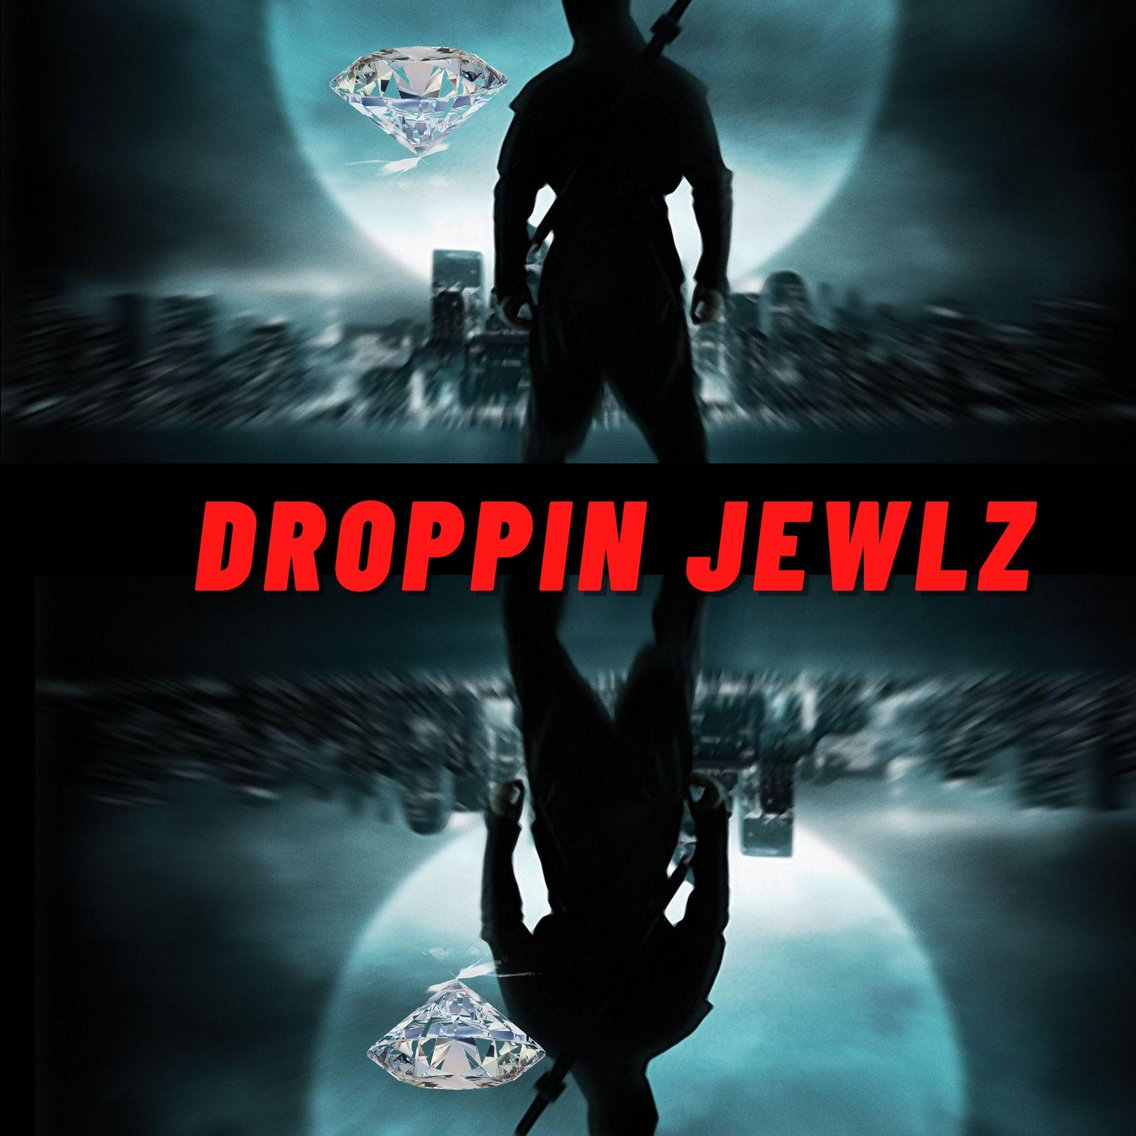 DROPPIN JEWLZ - Cover Image